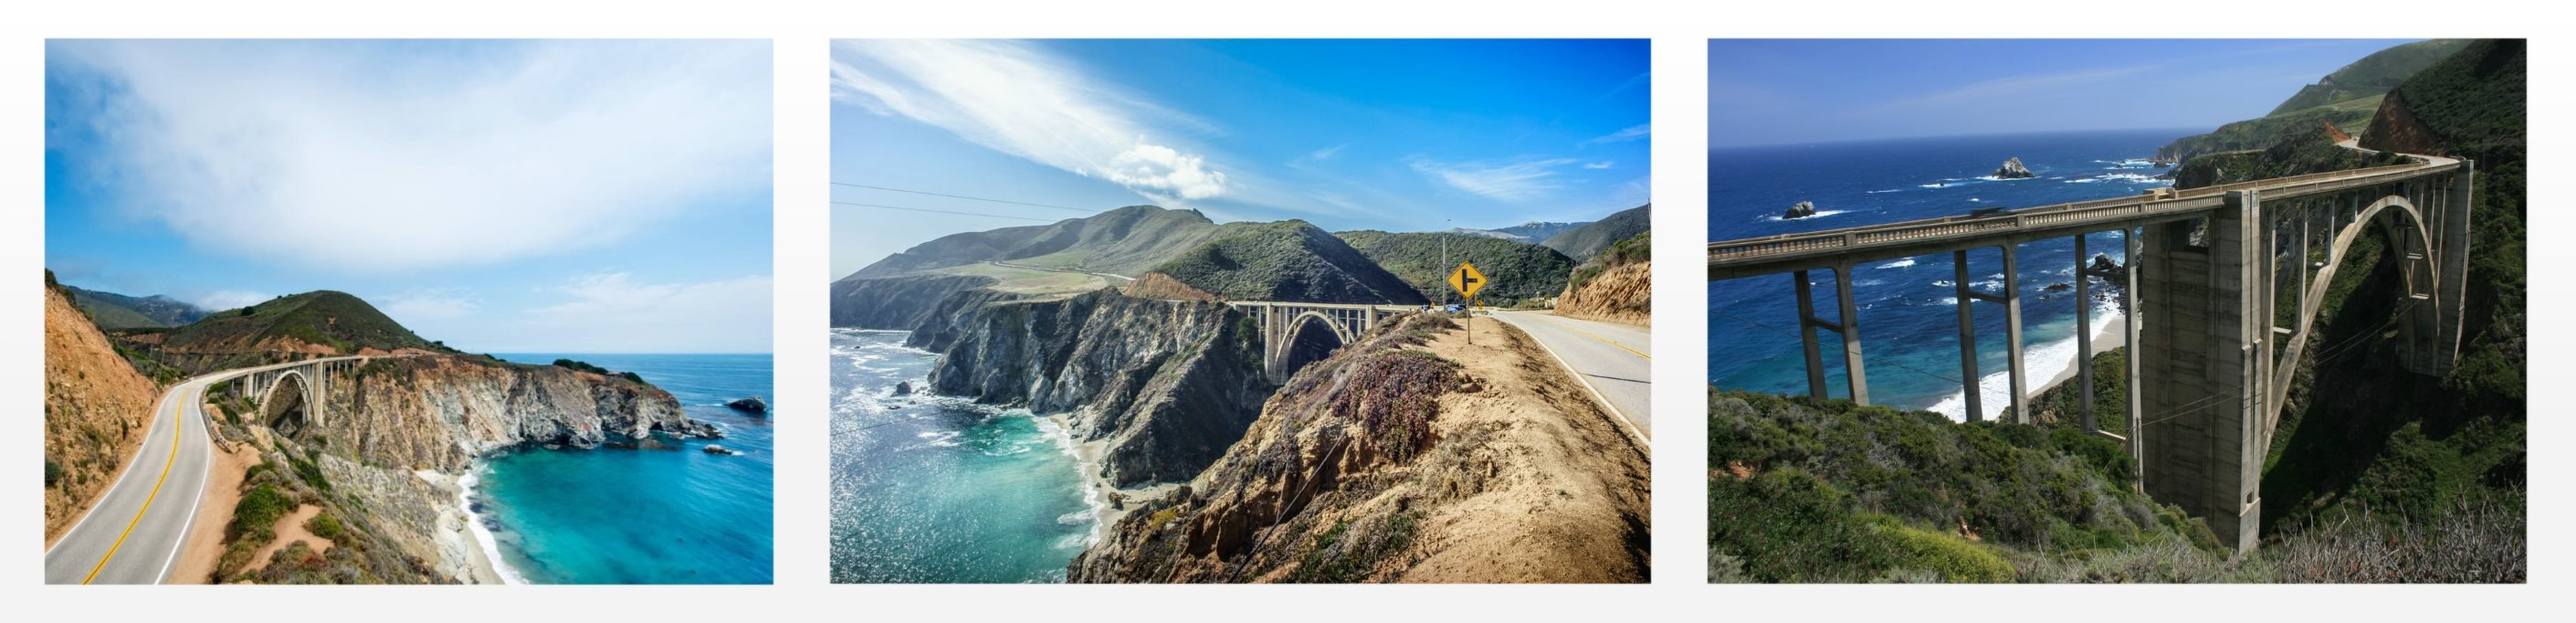 Bixby Creek Bridge pics